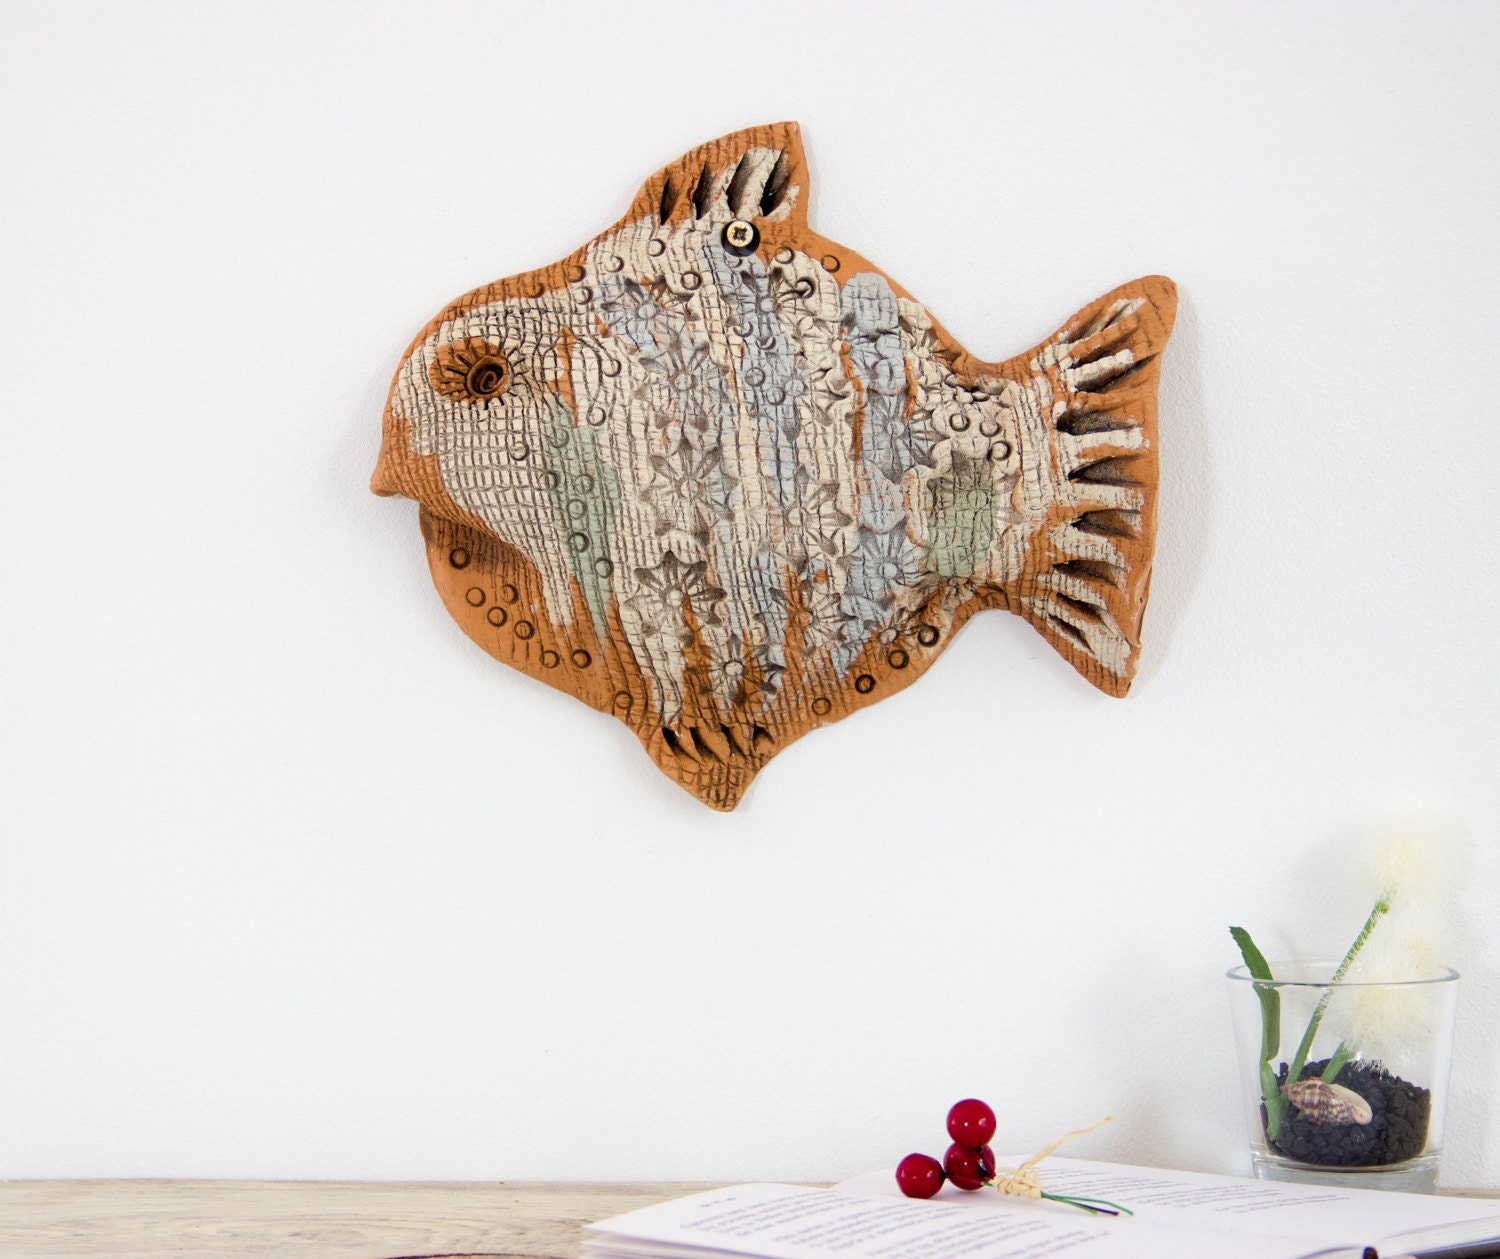 Wall Decor With Clay : Wall decoration ceramic fish sculpture decor nautical